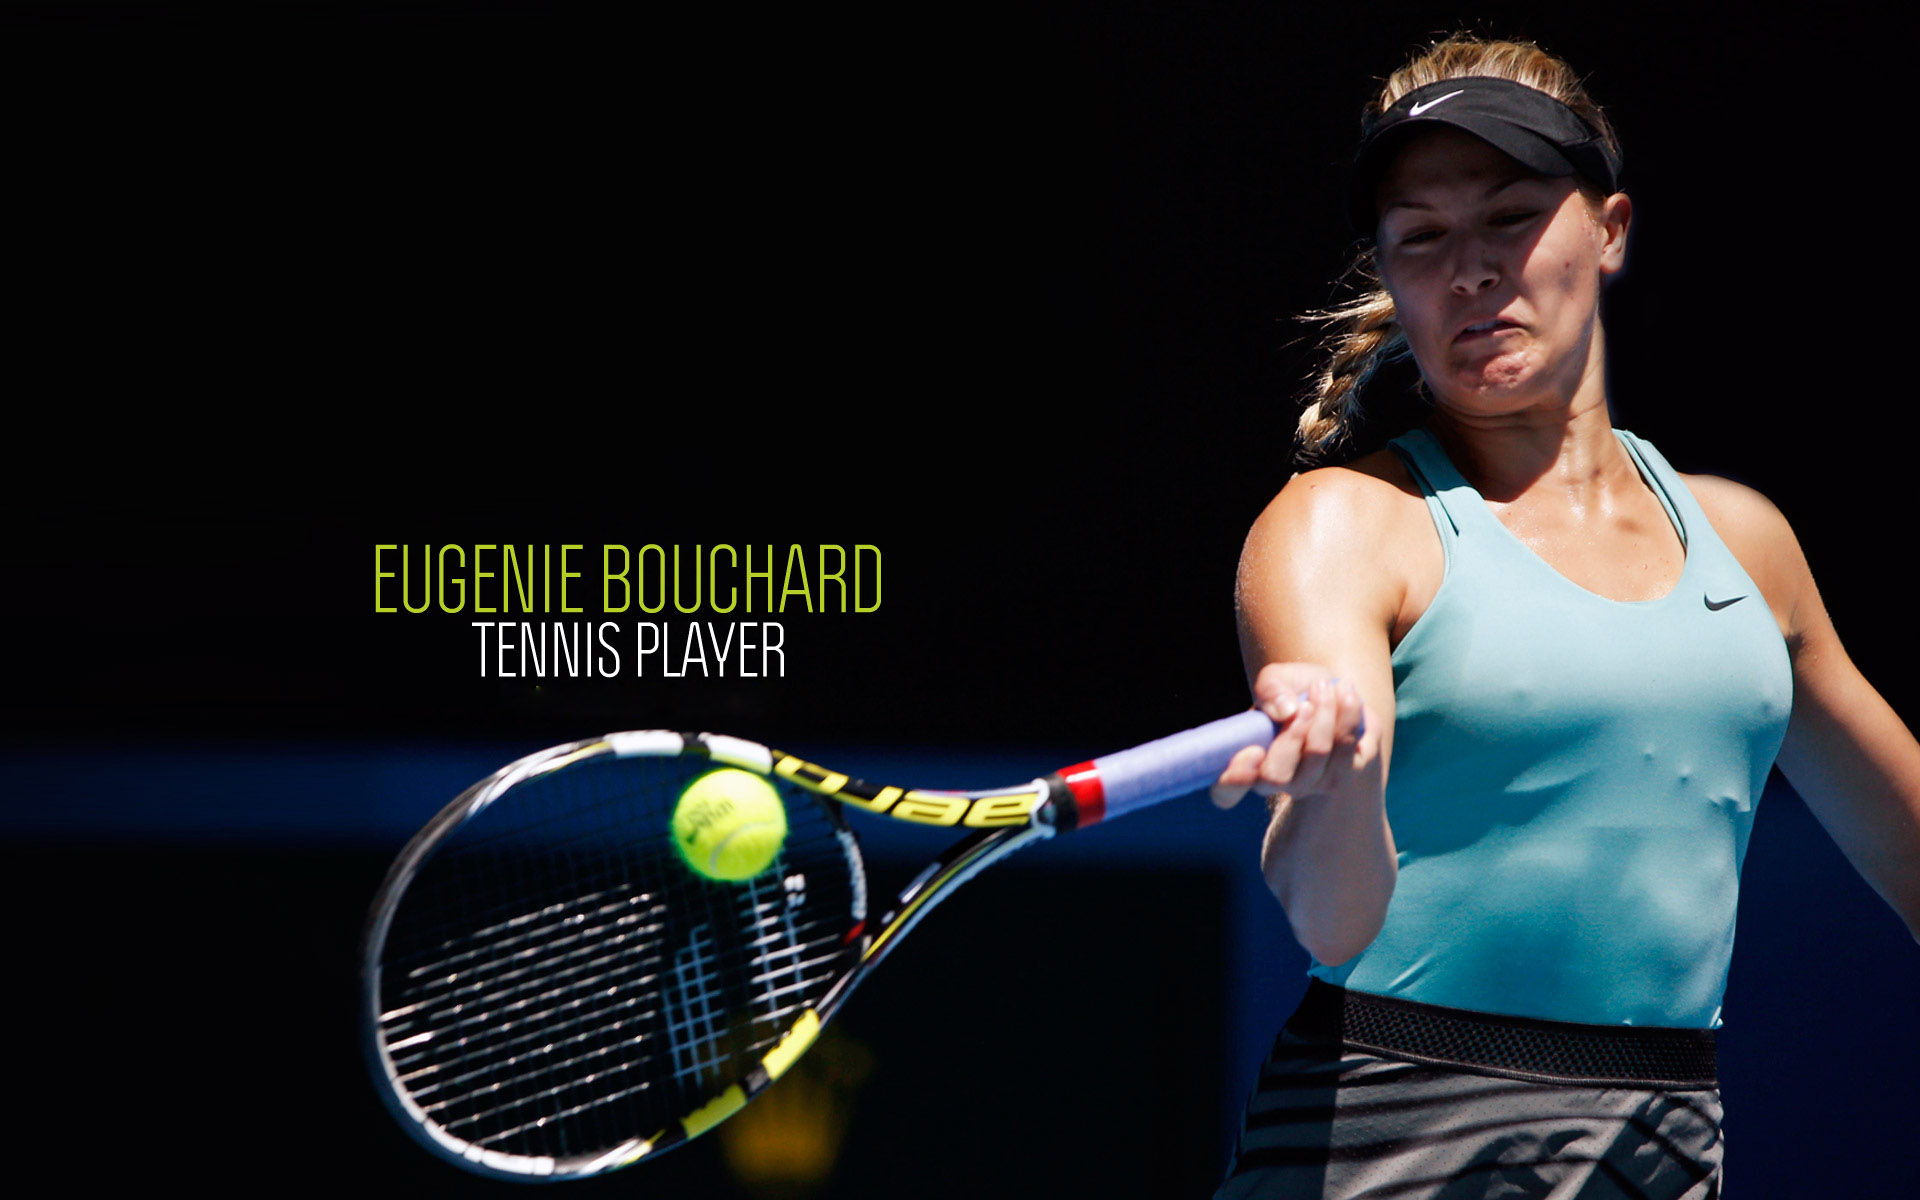 Eugenie Bouchard Hd Wallpapers With Resolutions 1920×1200 Pixel Wallpaper